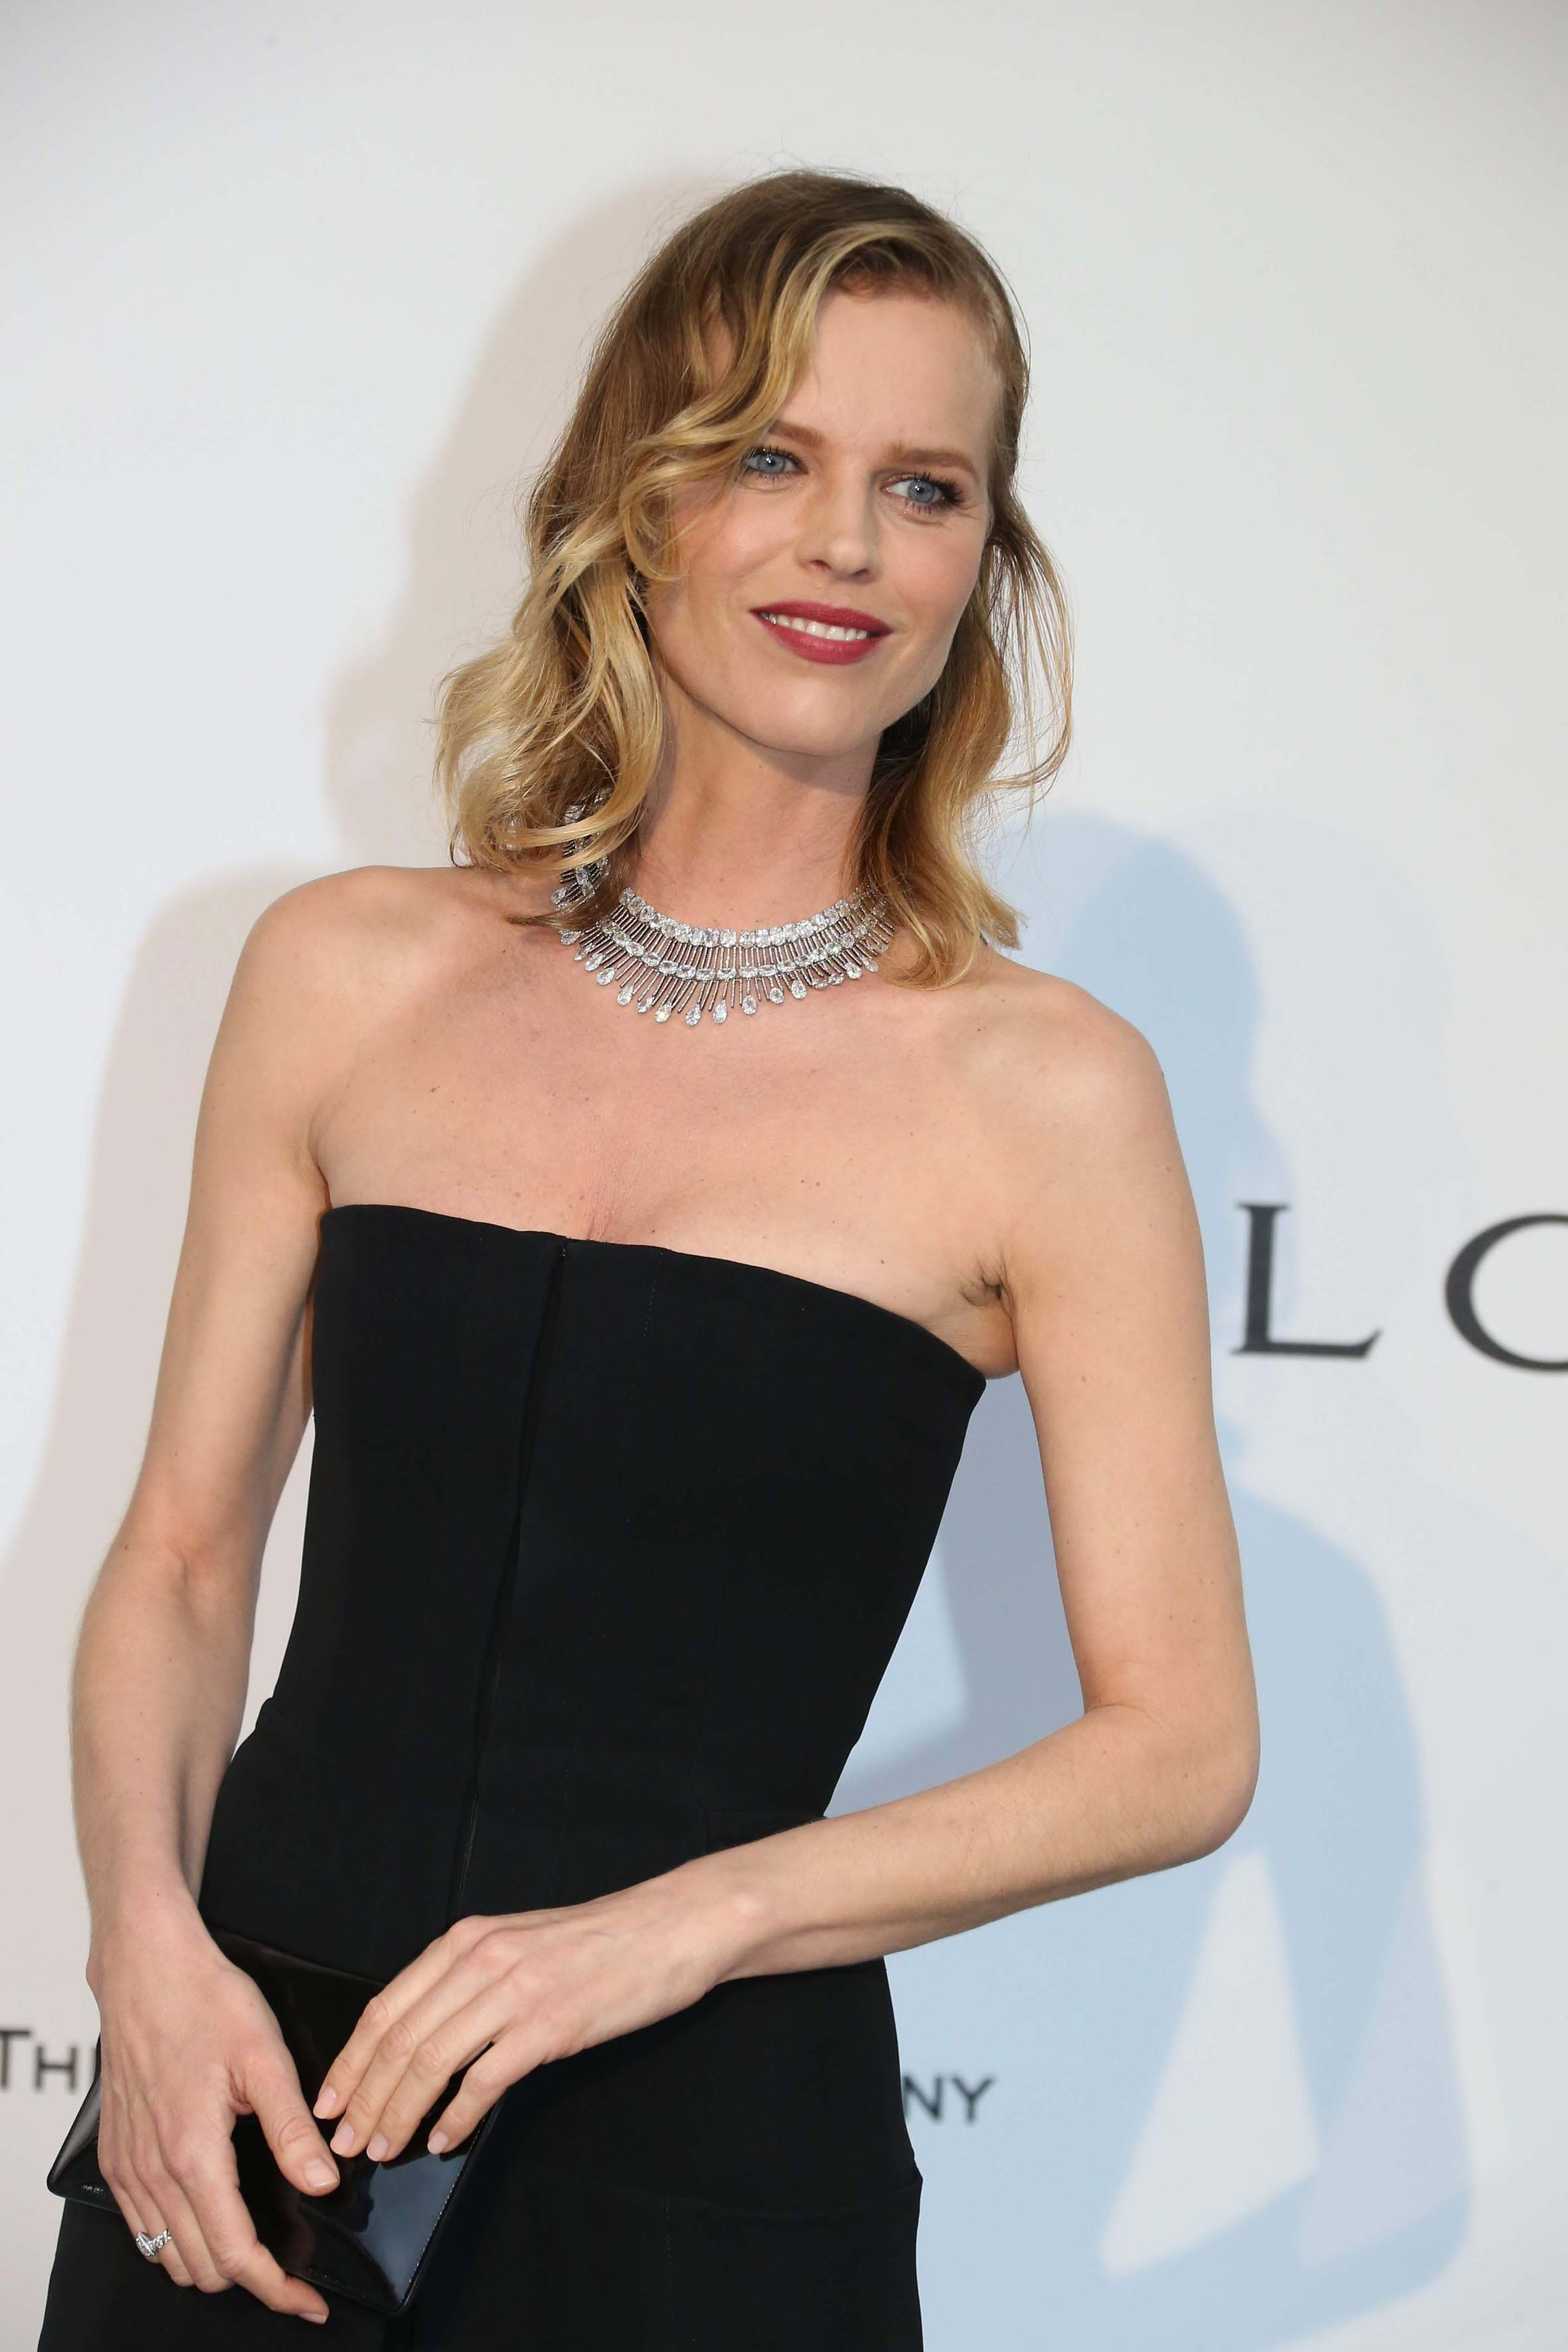 Model Eva Herzigova chose a pear-cut and cushion-cut diamonds necklace and radiant-cut diamonds earrings, both in white gold, by Chopard